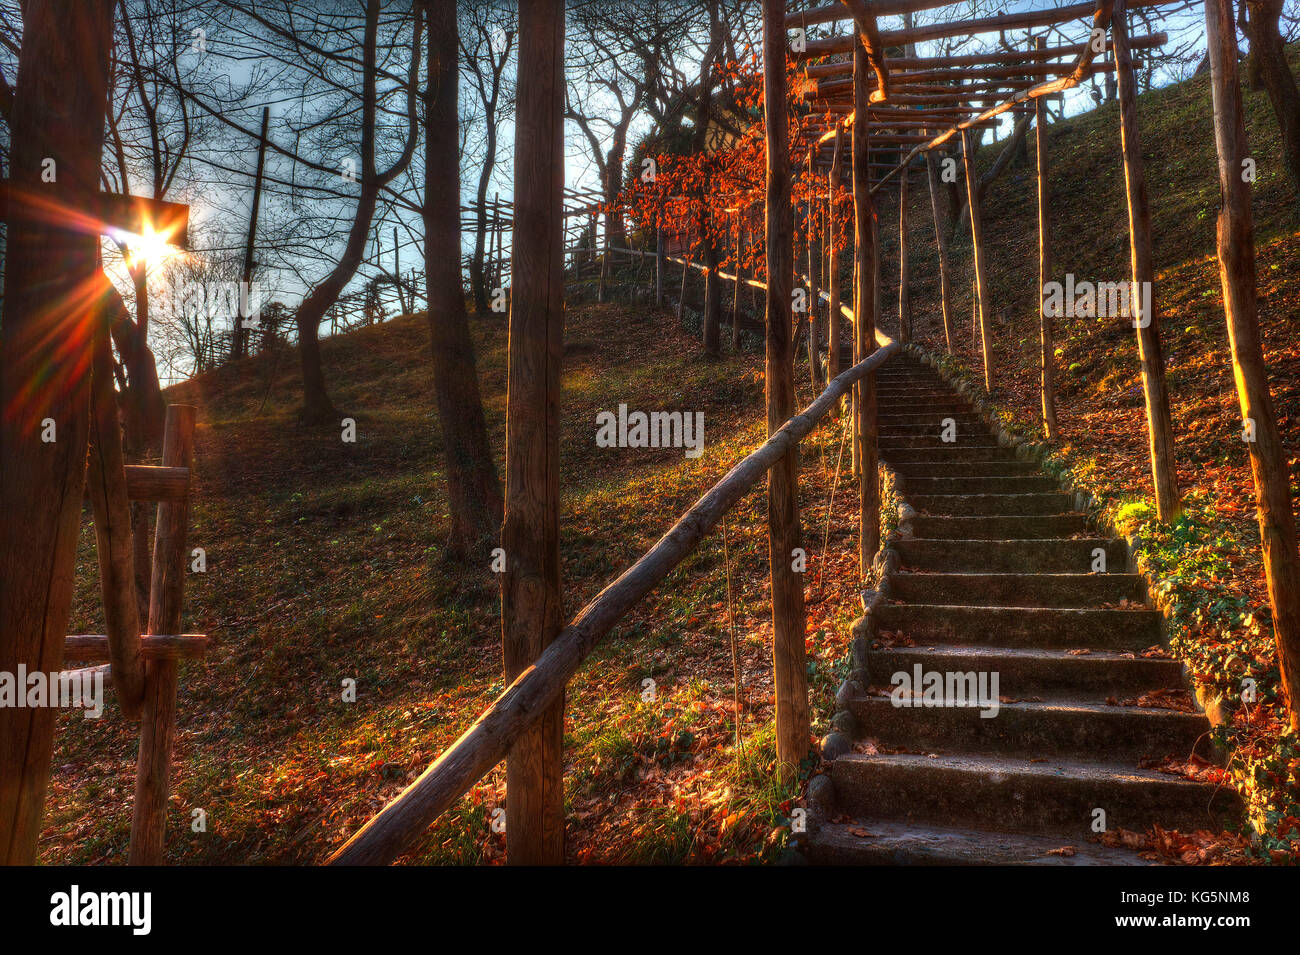 The ornithological station of Costa Perla. Barro mount park, Lecco province, Brianza, Lombardy, Italy, Europe - Stock Image